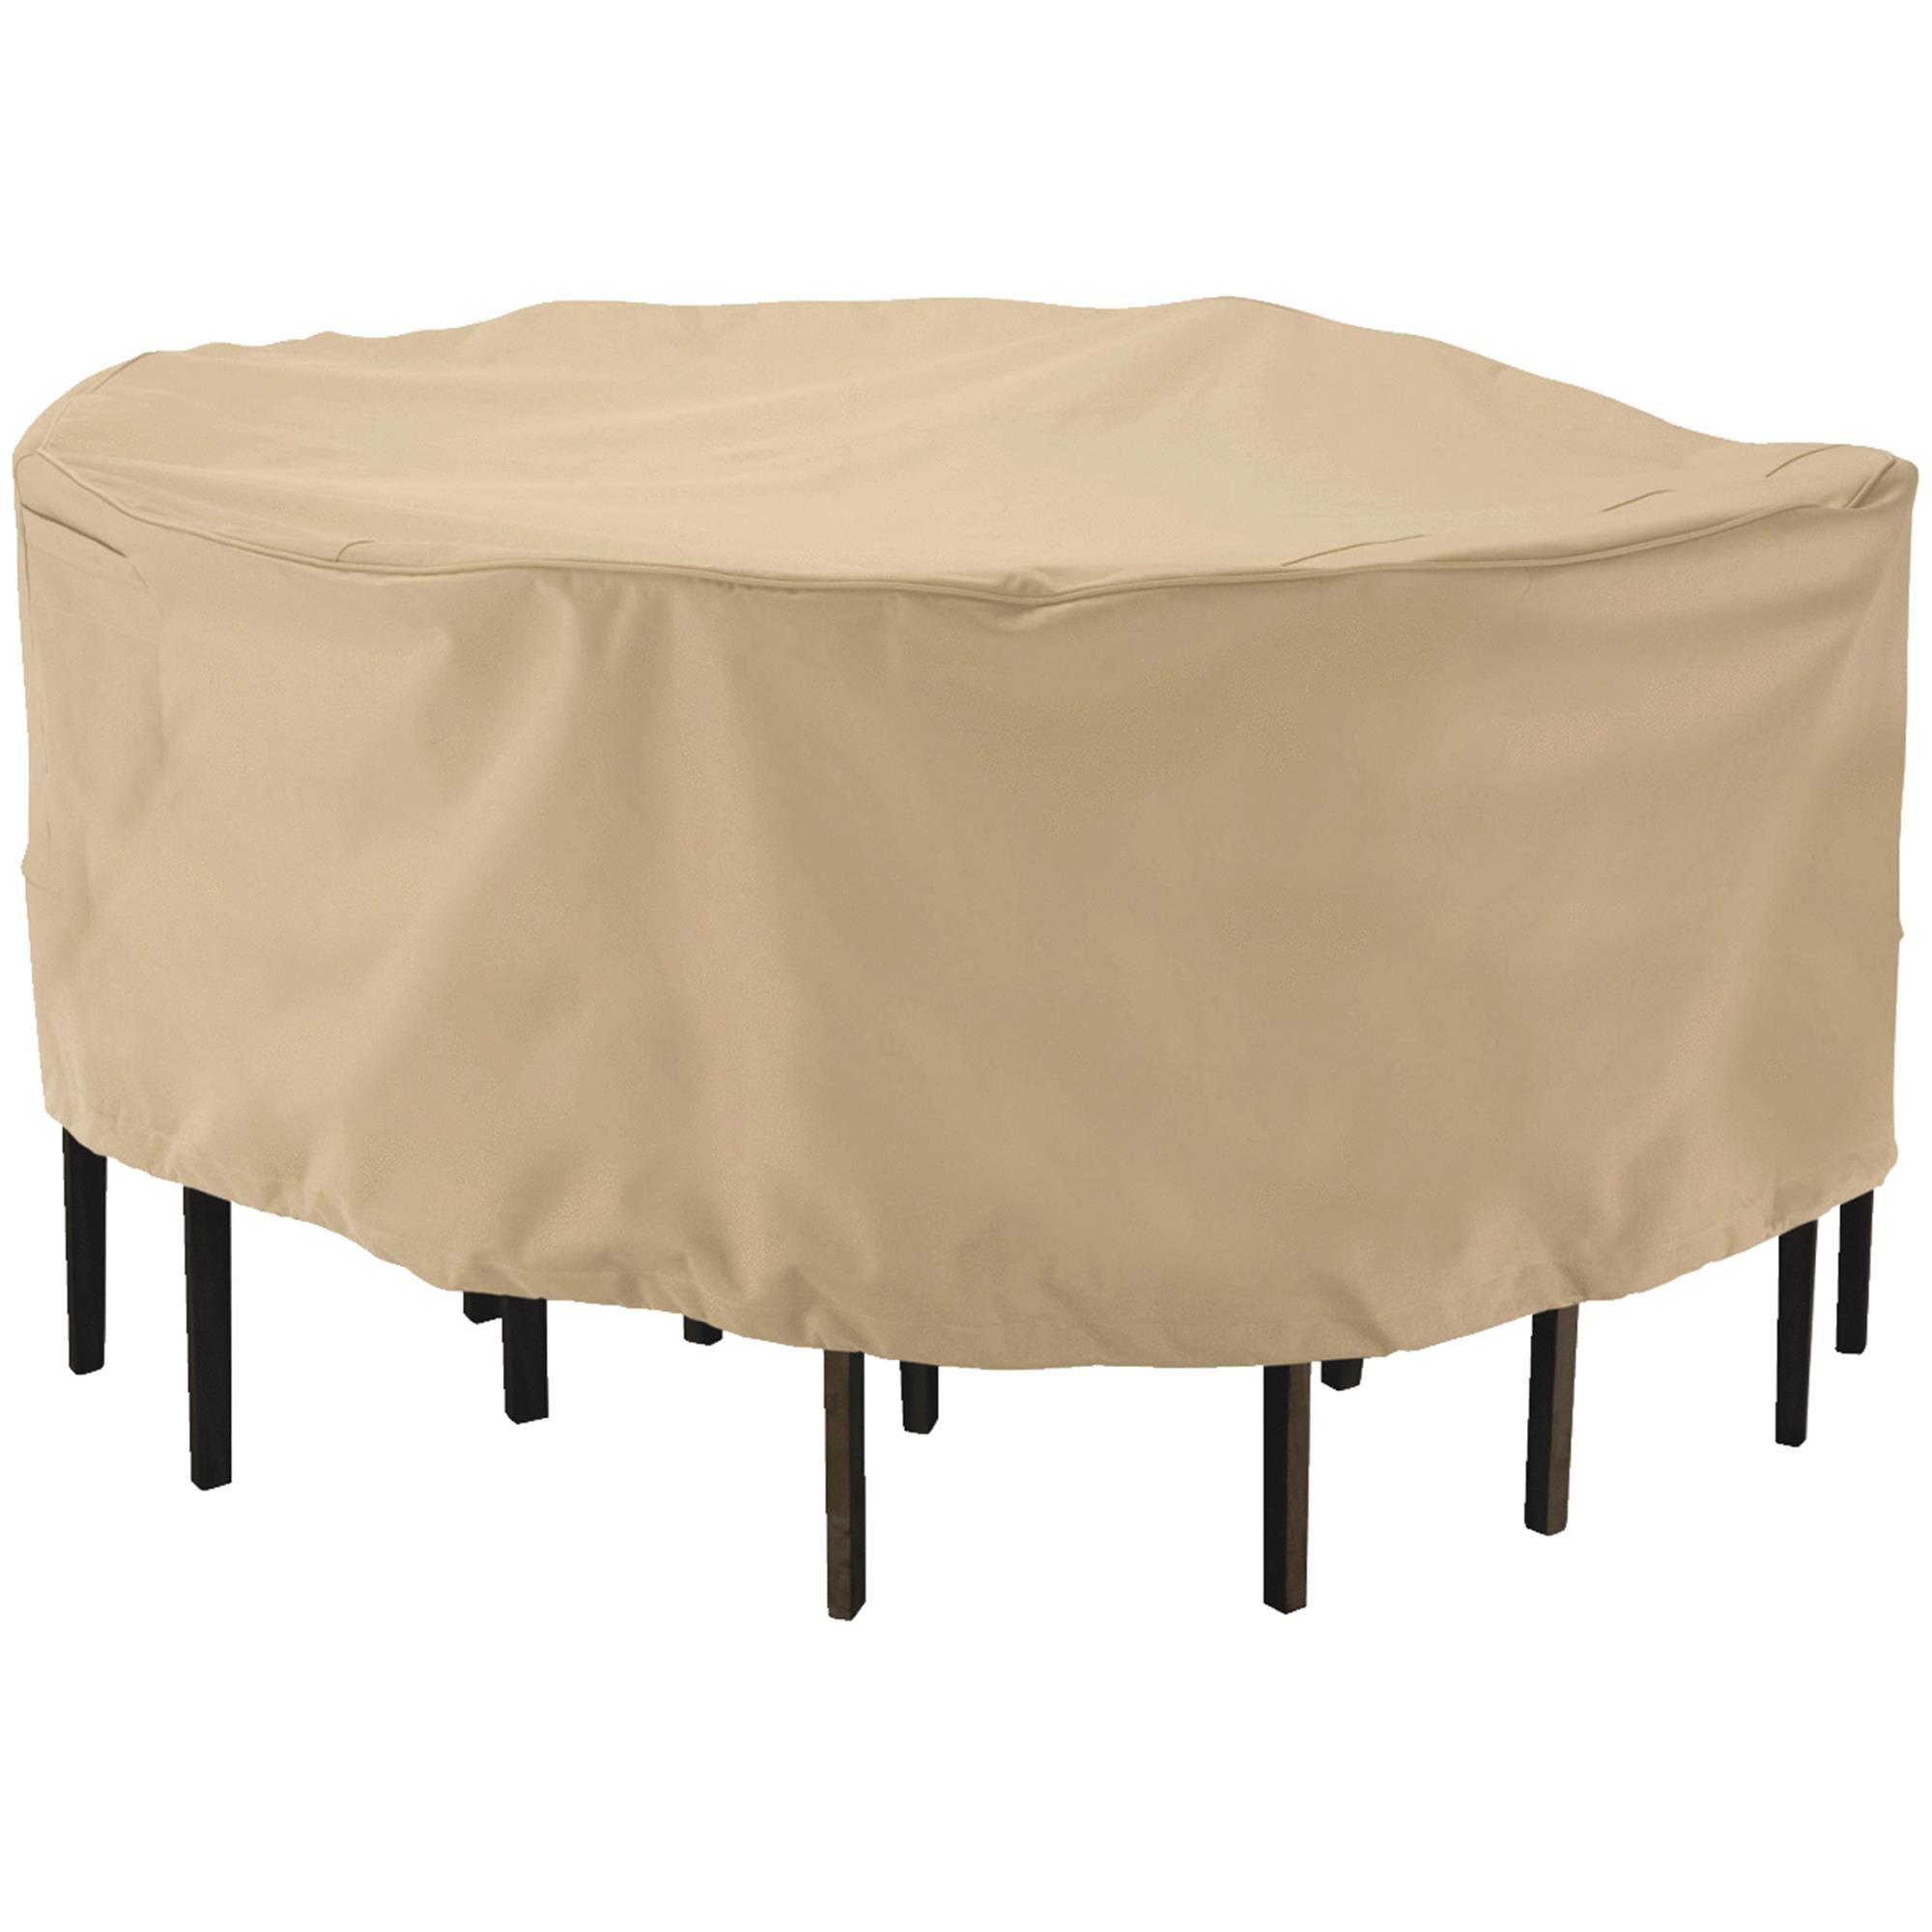 Classic Accessories Terrazzo Round Chair & Table Cover